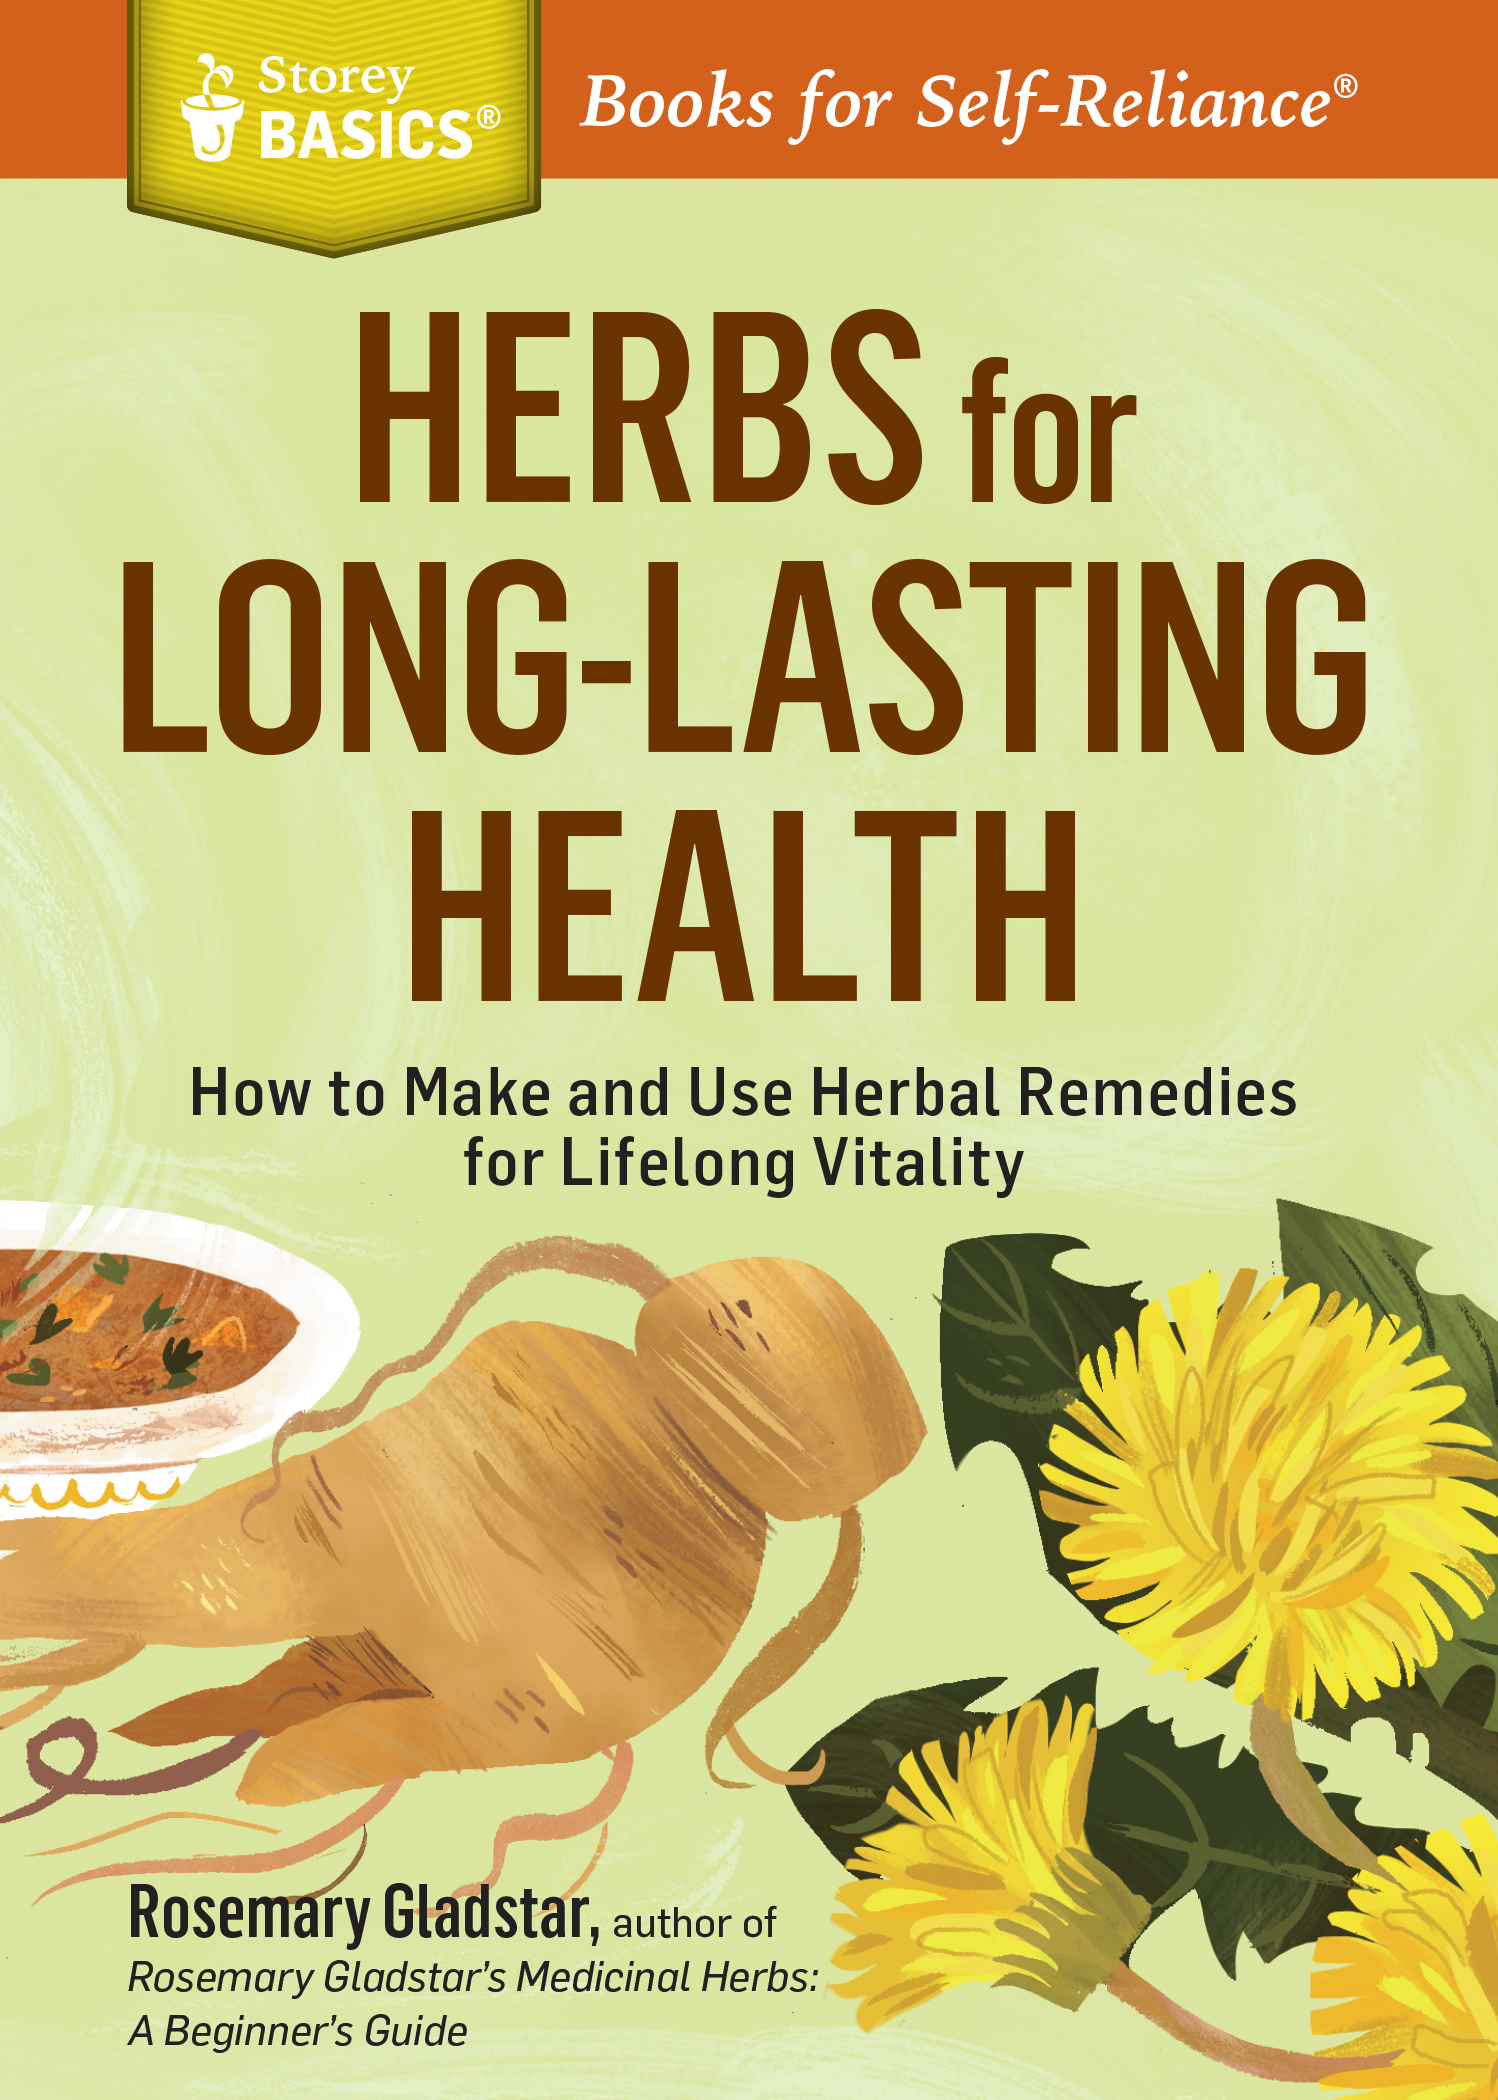 Herbs for Long-Lasting Health How to Make and Use Herbal Remedies for Lifelong Vitality. A Storey BASICS® Title - Rosemary Gladstar